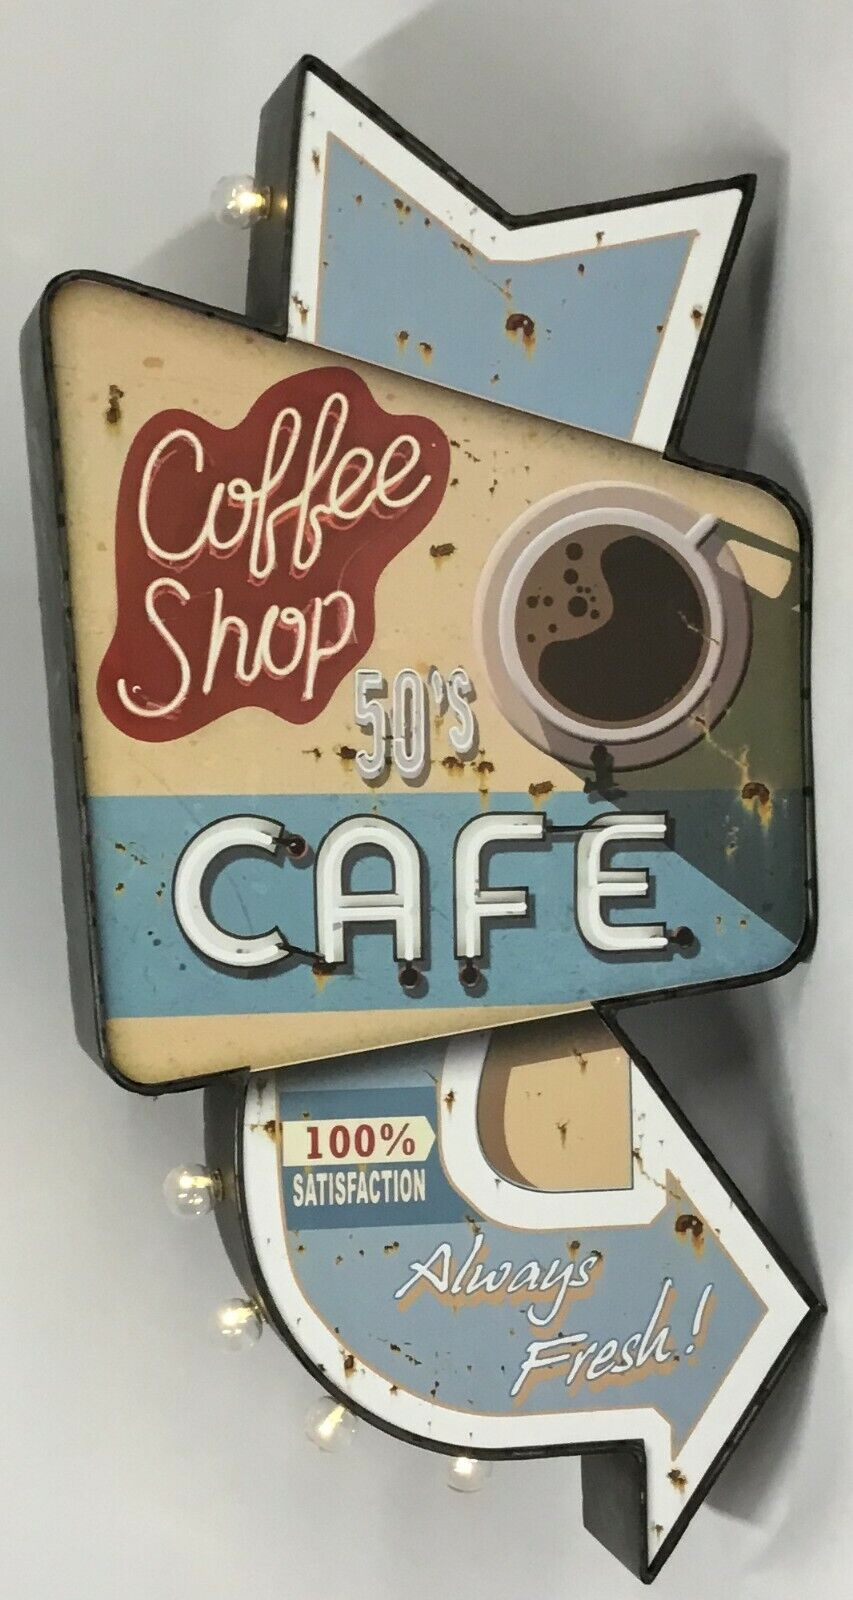 Retro Americana Cafe & Beer led signs, 2 Designs, Distressed Metal,